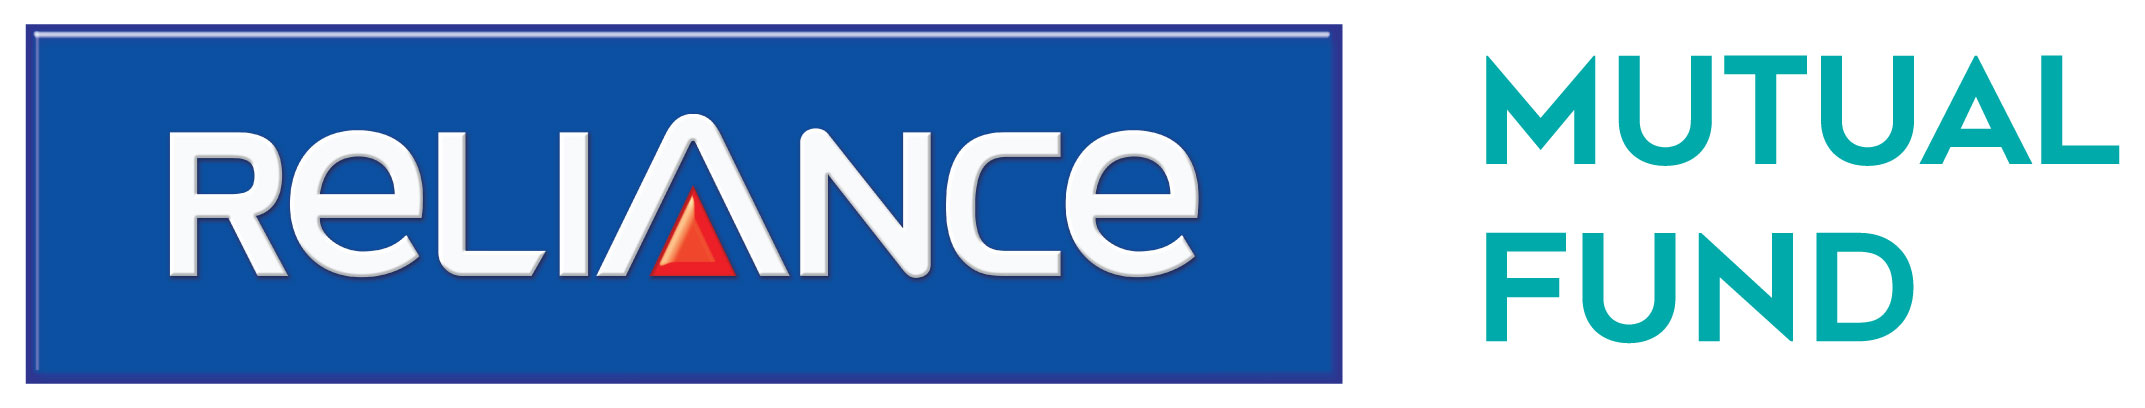 reliance Reliance entertainment is a division of the reliance anil dhirubhai ambani group handling its media and entertainment business, across content and distribution platforms.